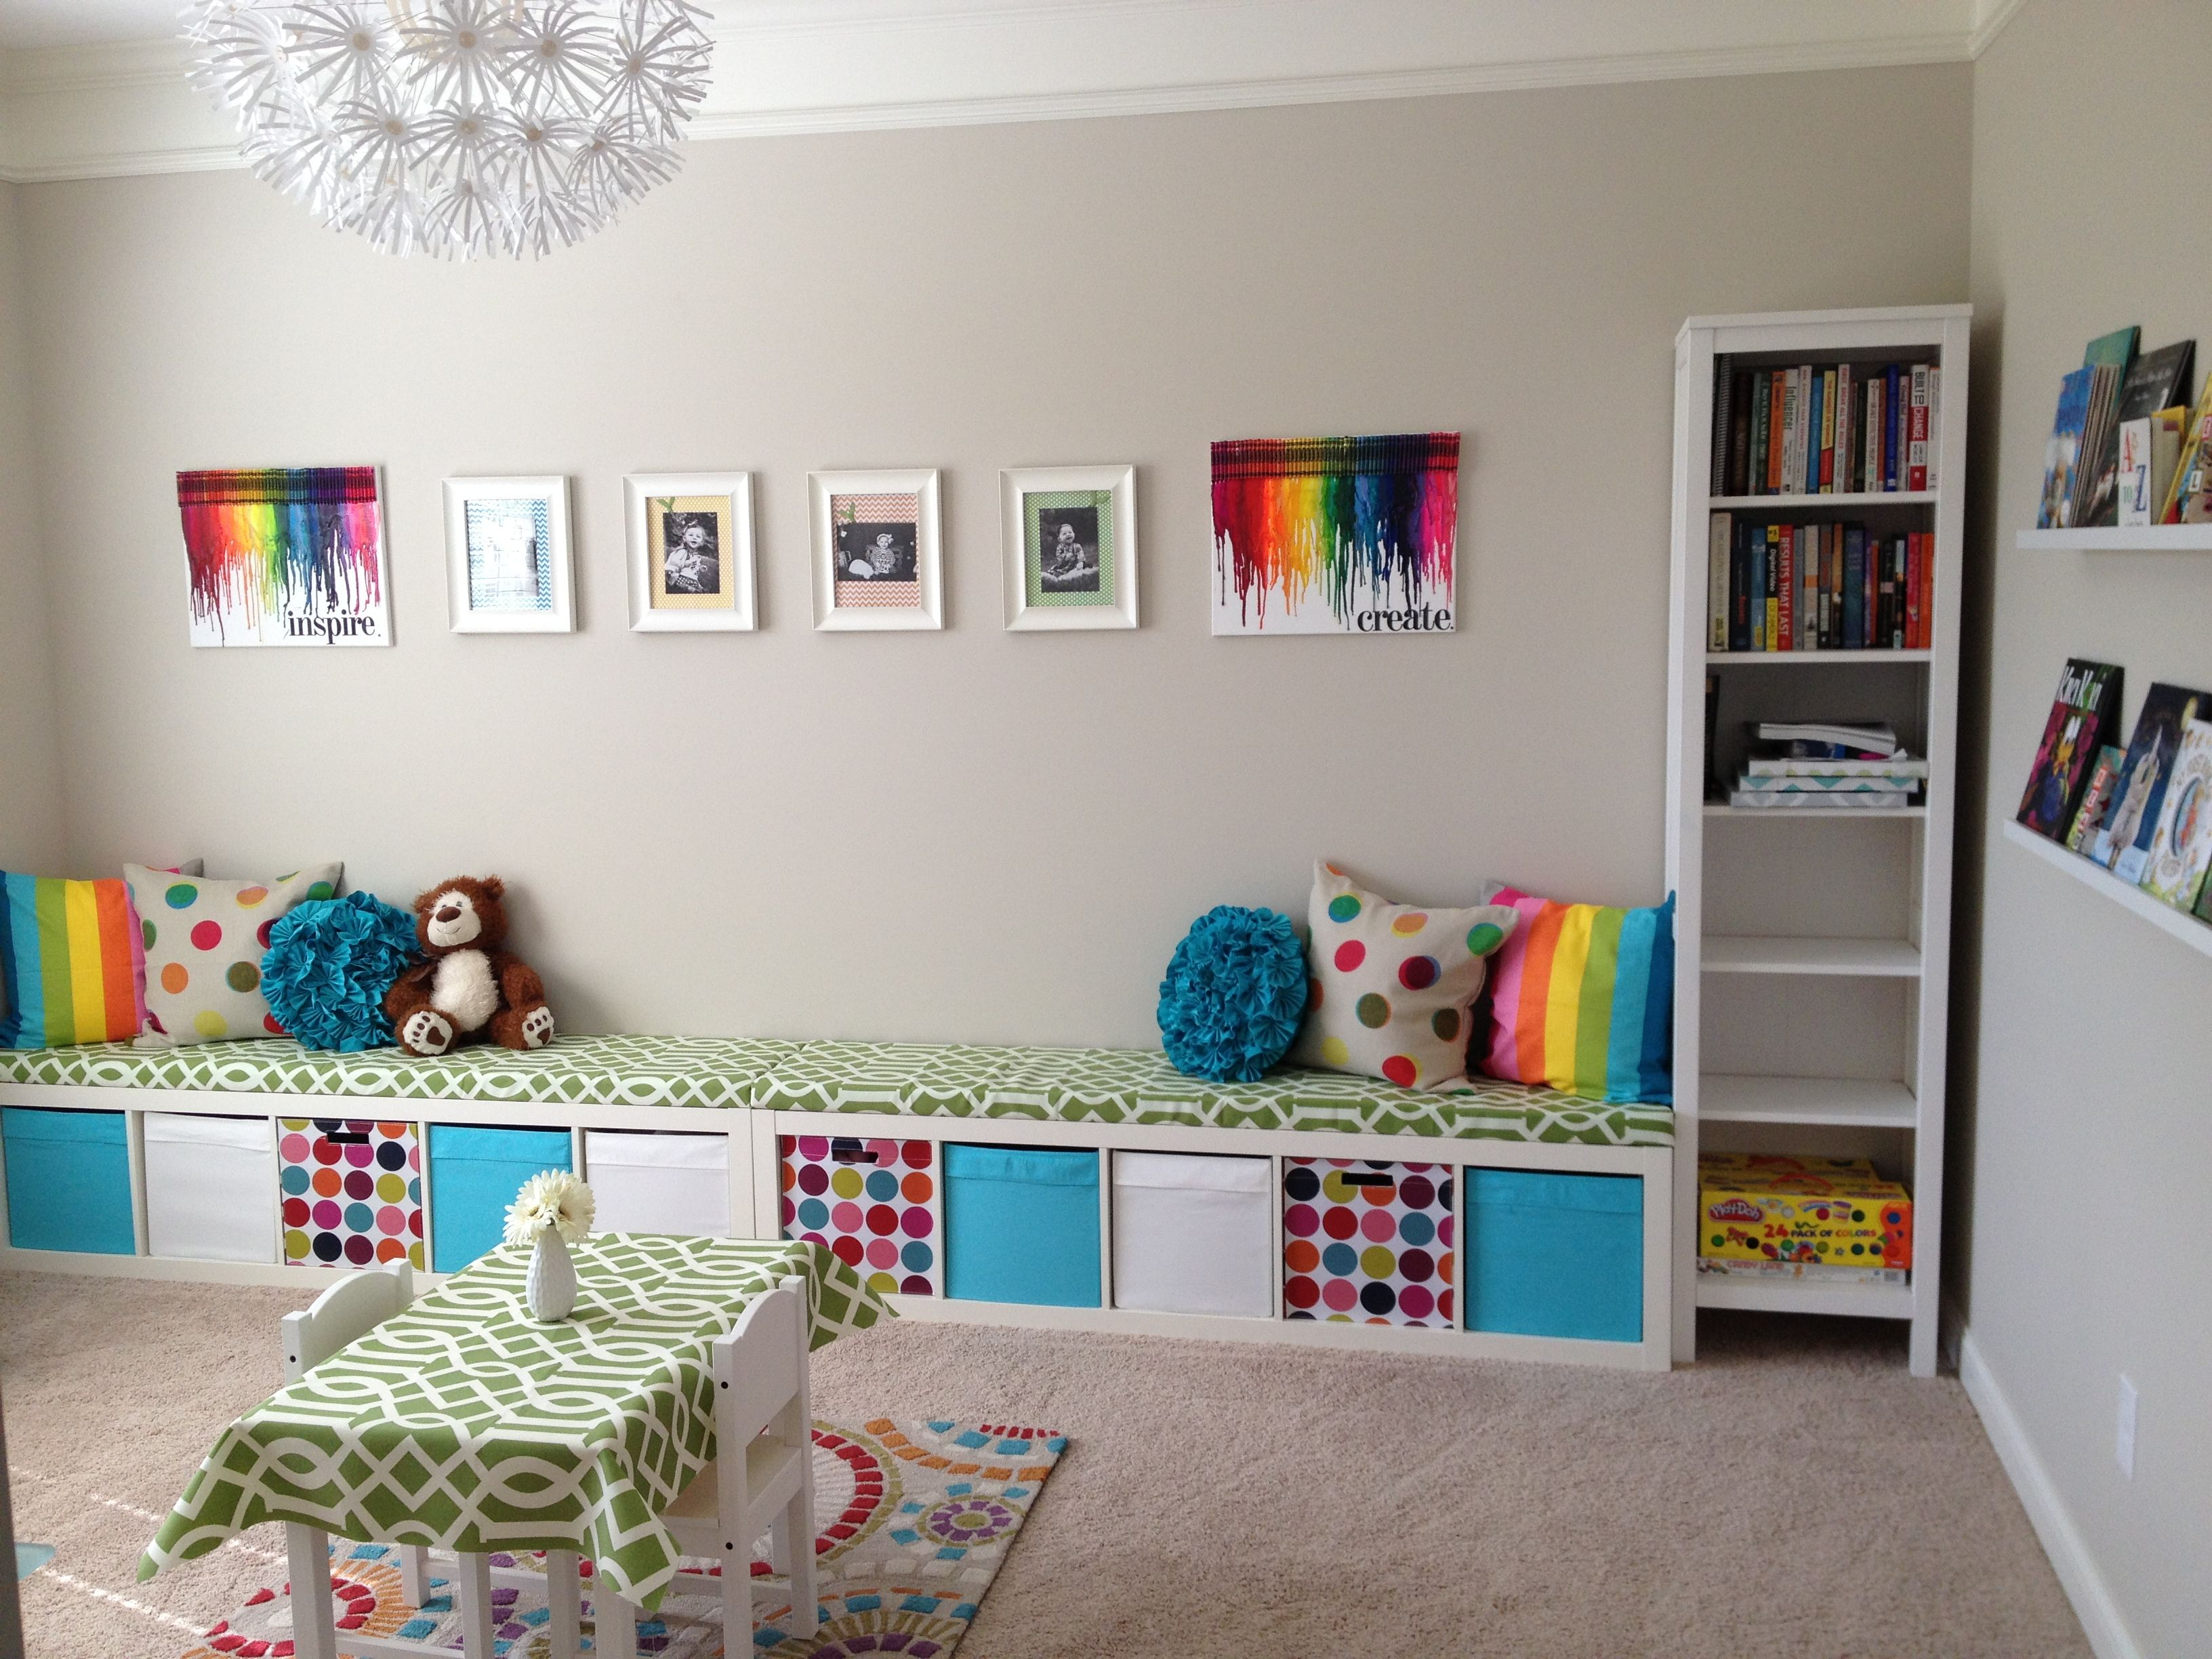 Design Ikea Playroom Ideas ikea expedit playroom storage bench two together to go down the interior design ideas on with hd resolution pixels brown floor and white storagebrown wallwhite ceili